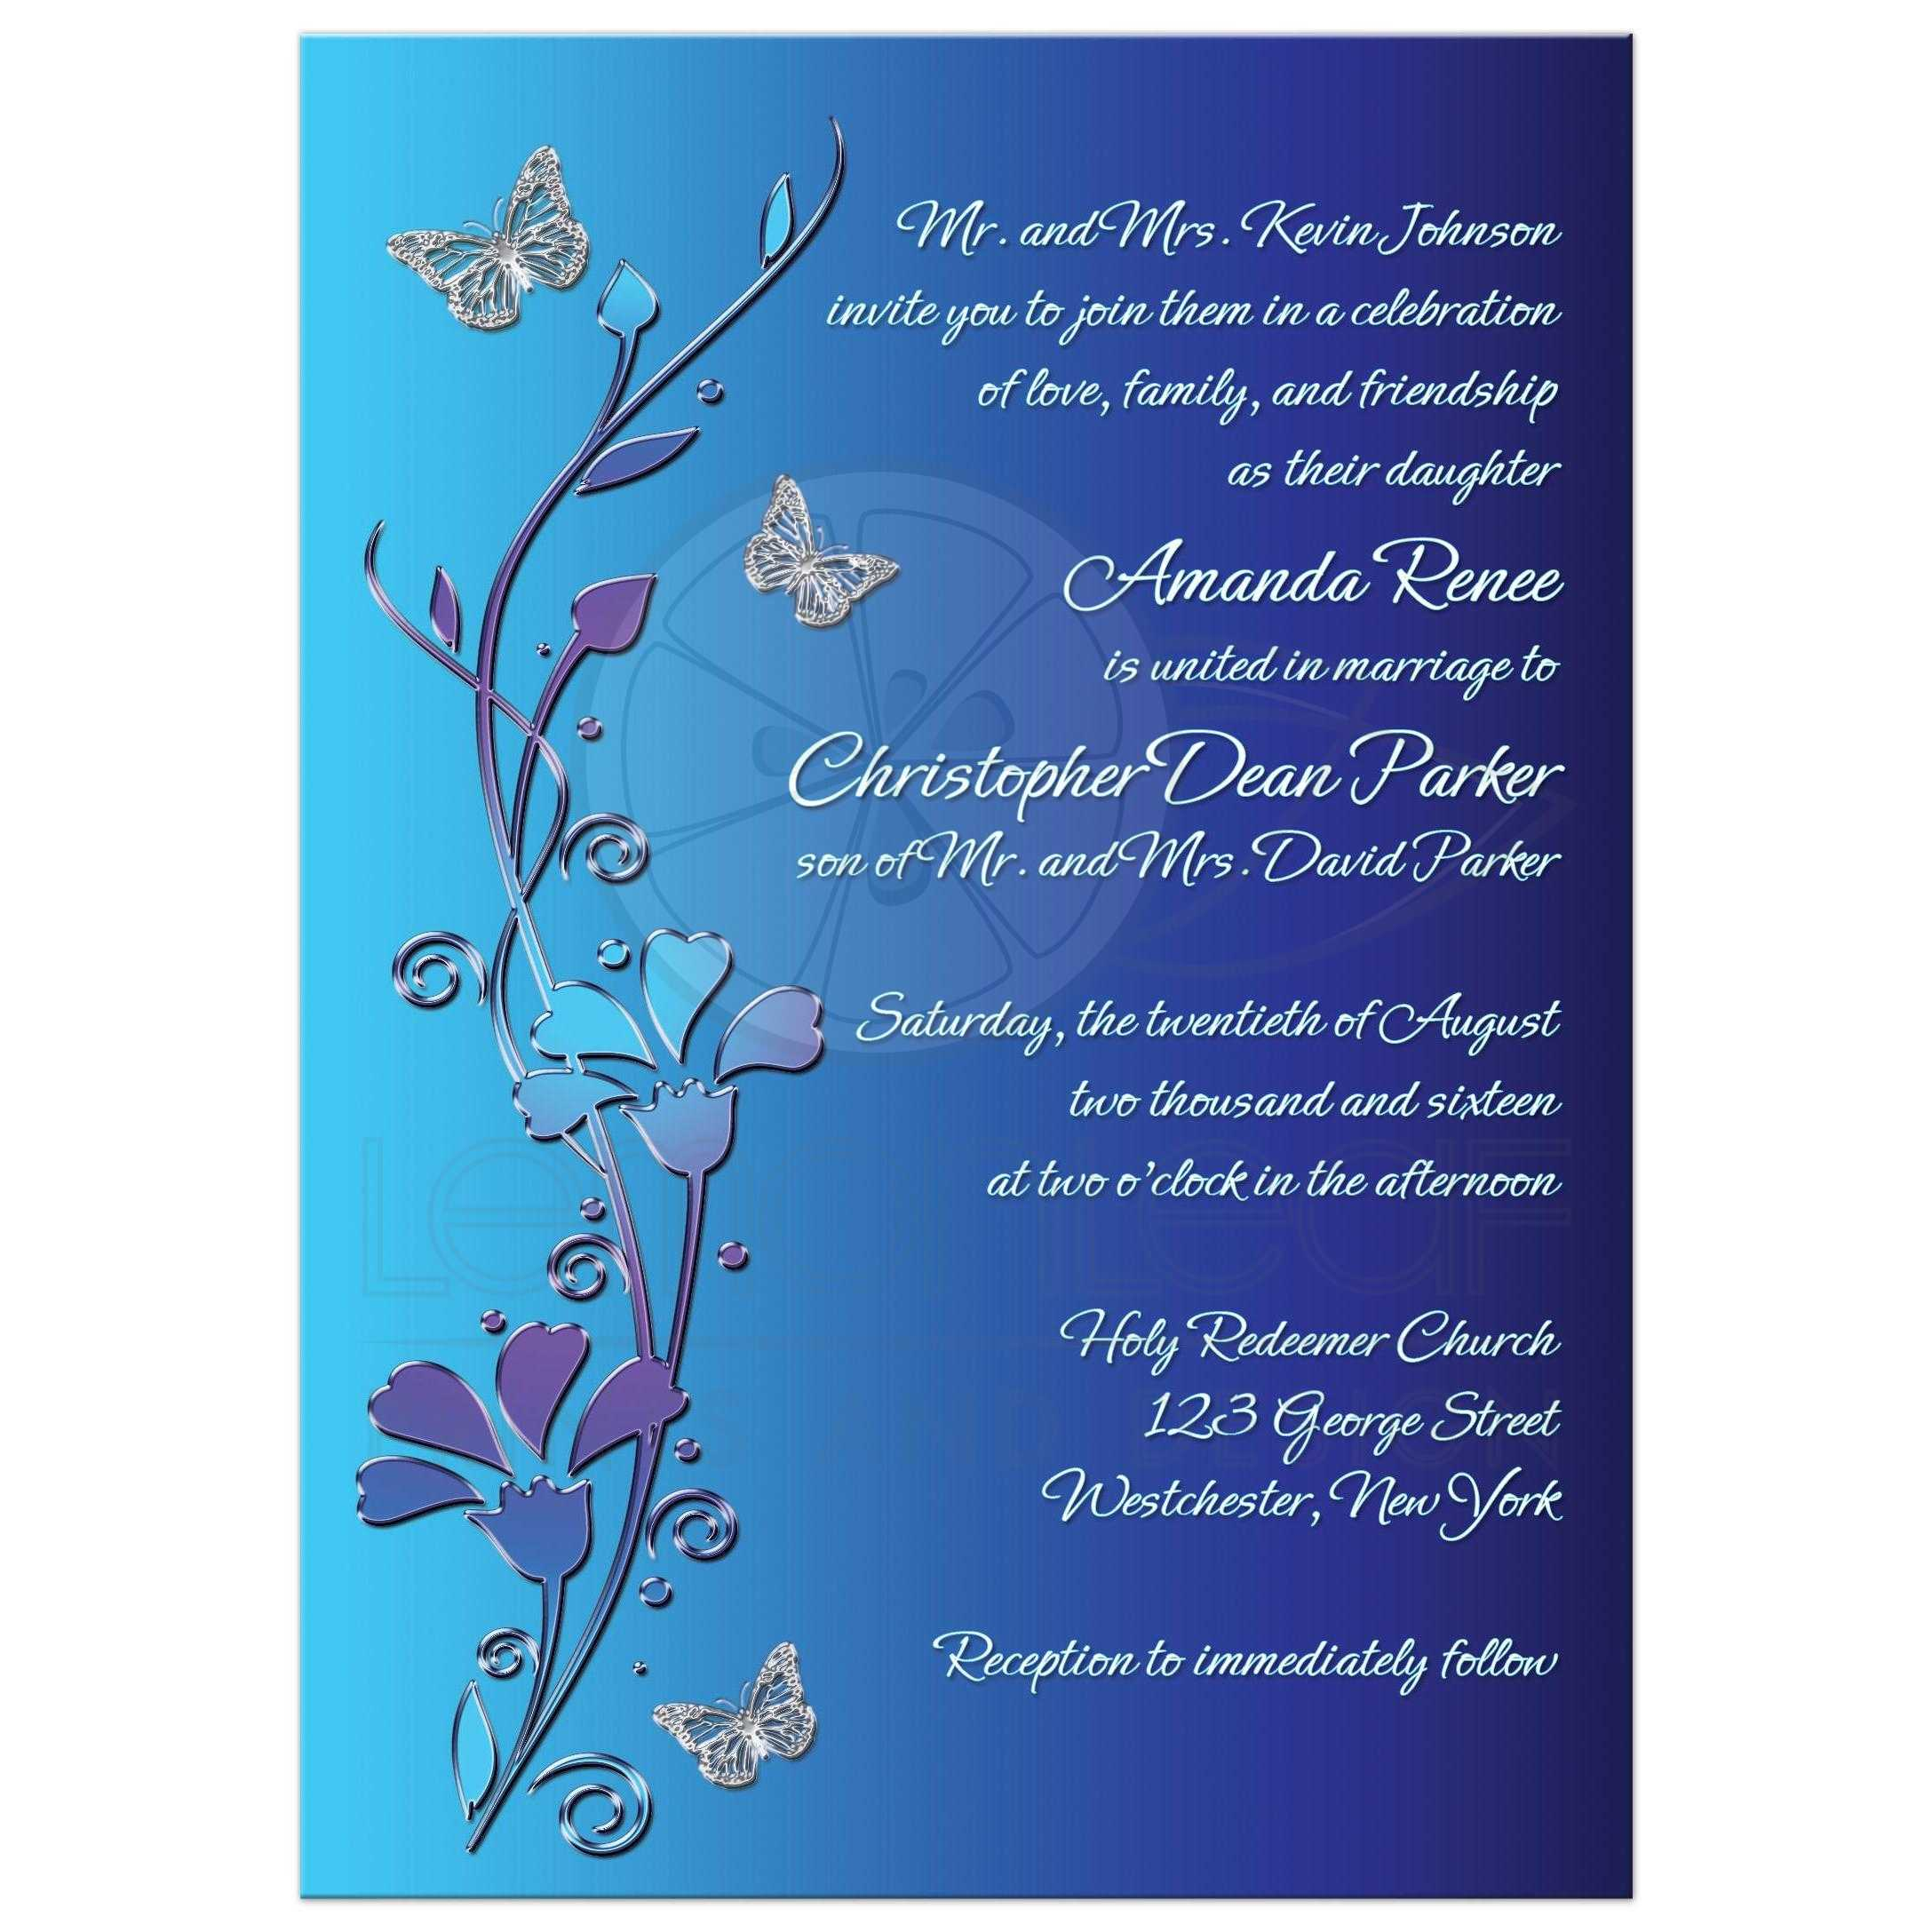 Wedding Invitation | Royal Blue, Turquoise, Mauve Flowers | Silver Butterflies